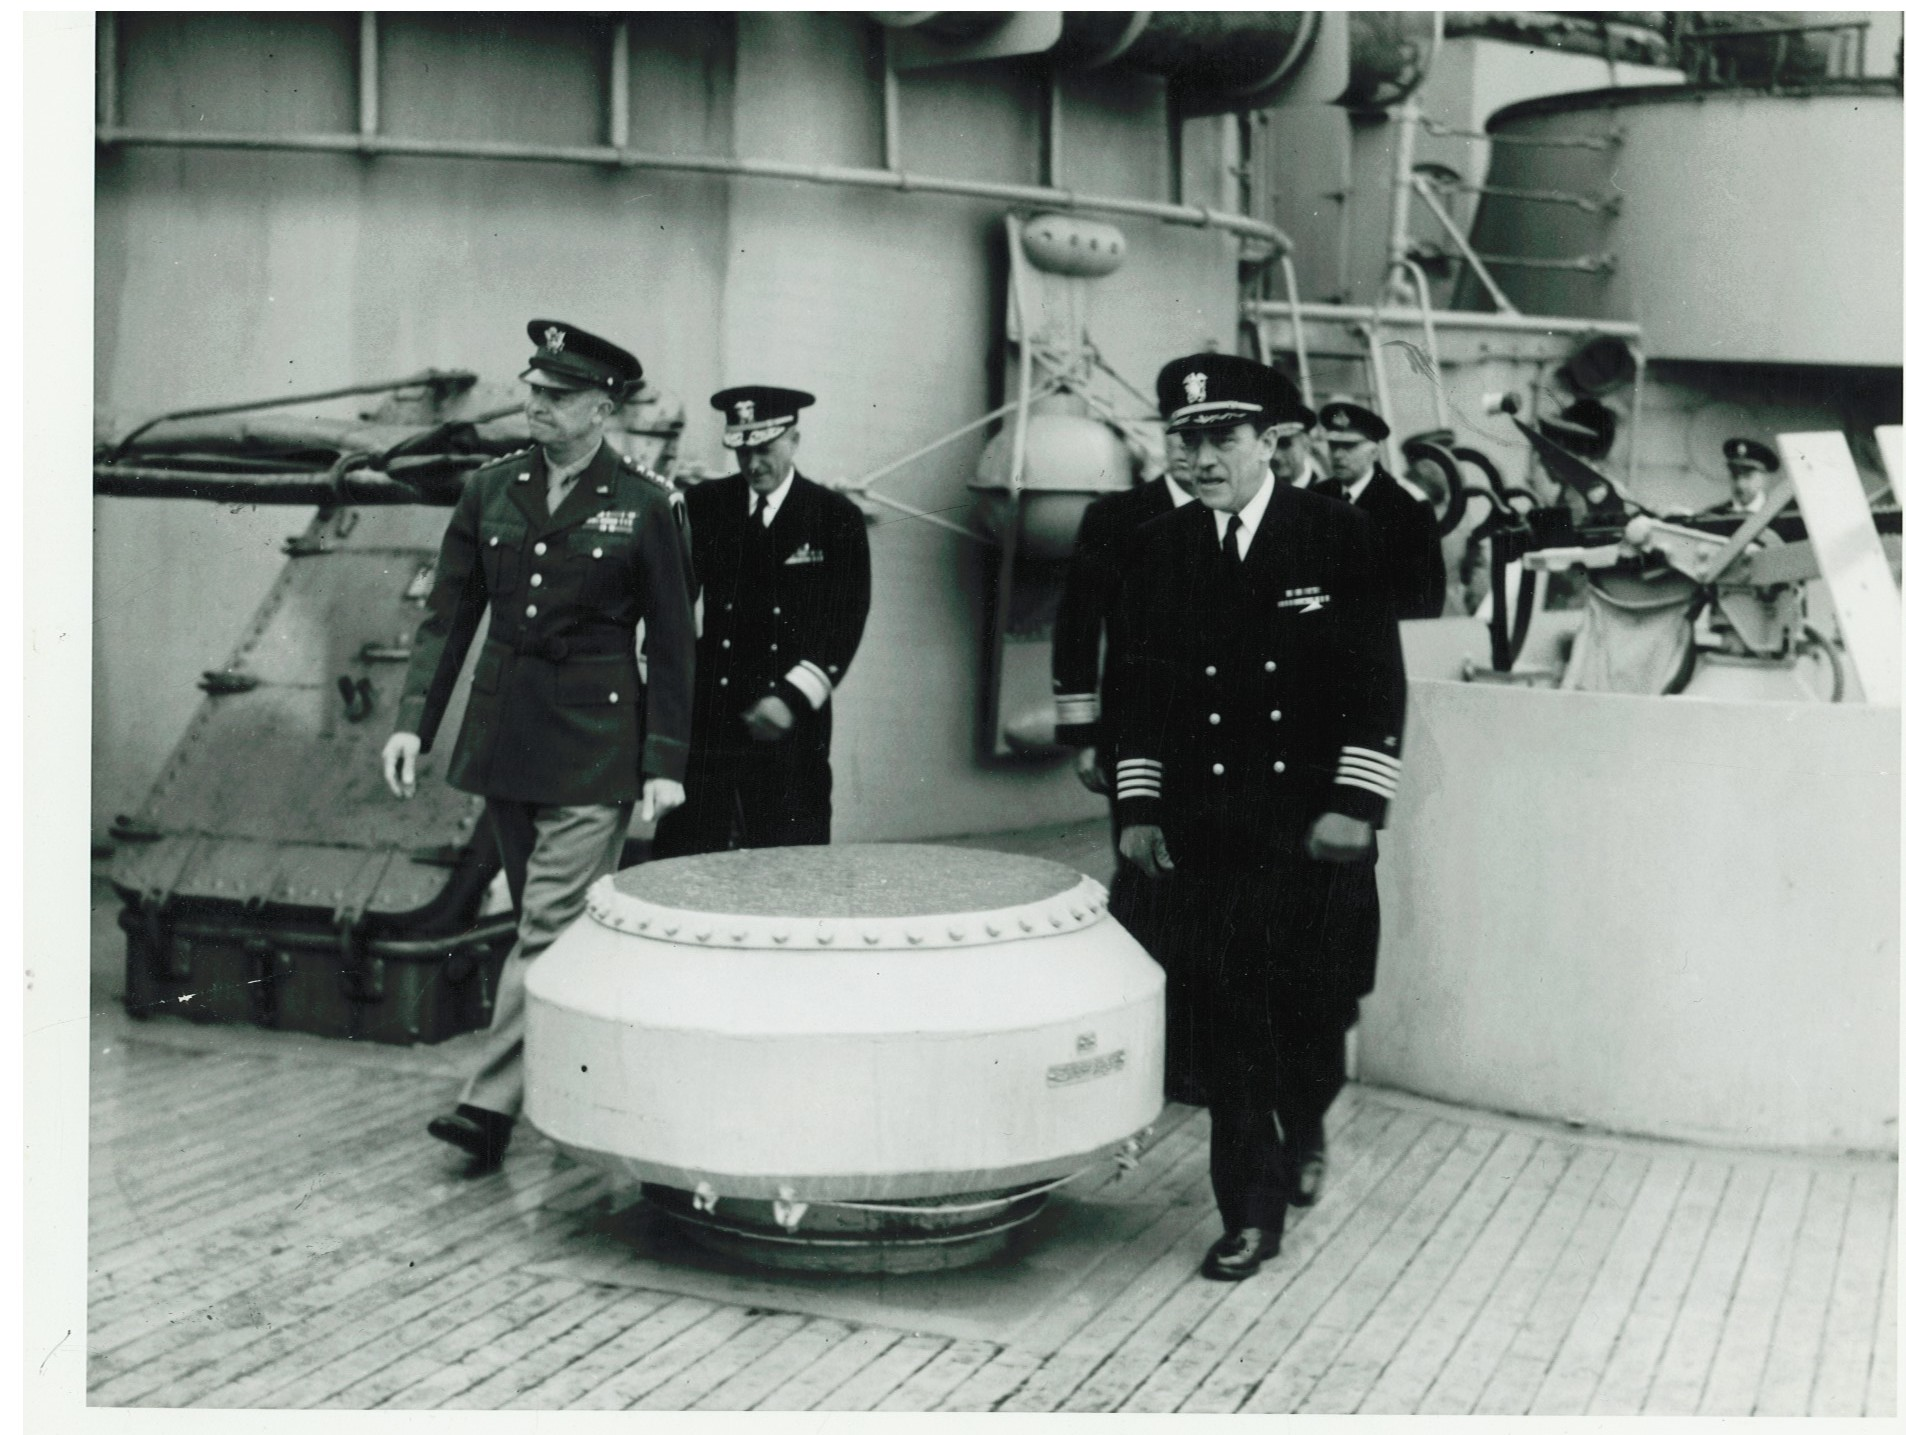 [Foreground, left to right] General Dwight D. Eisenhower, Rear Admiral Carleton F. Bryant, Captain Charles Adam Baker, May 19, 1944 on board the  USS Texas  in Belfast Lough, Ireland.